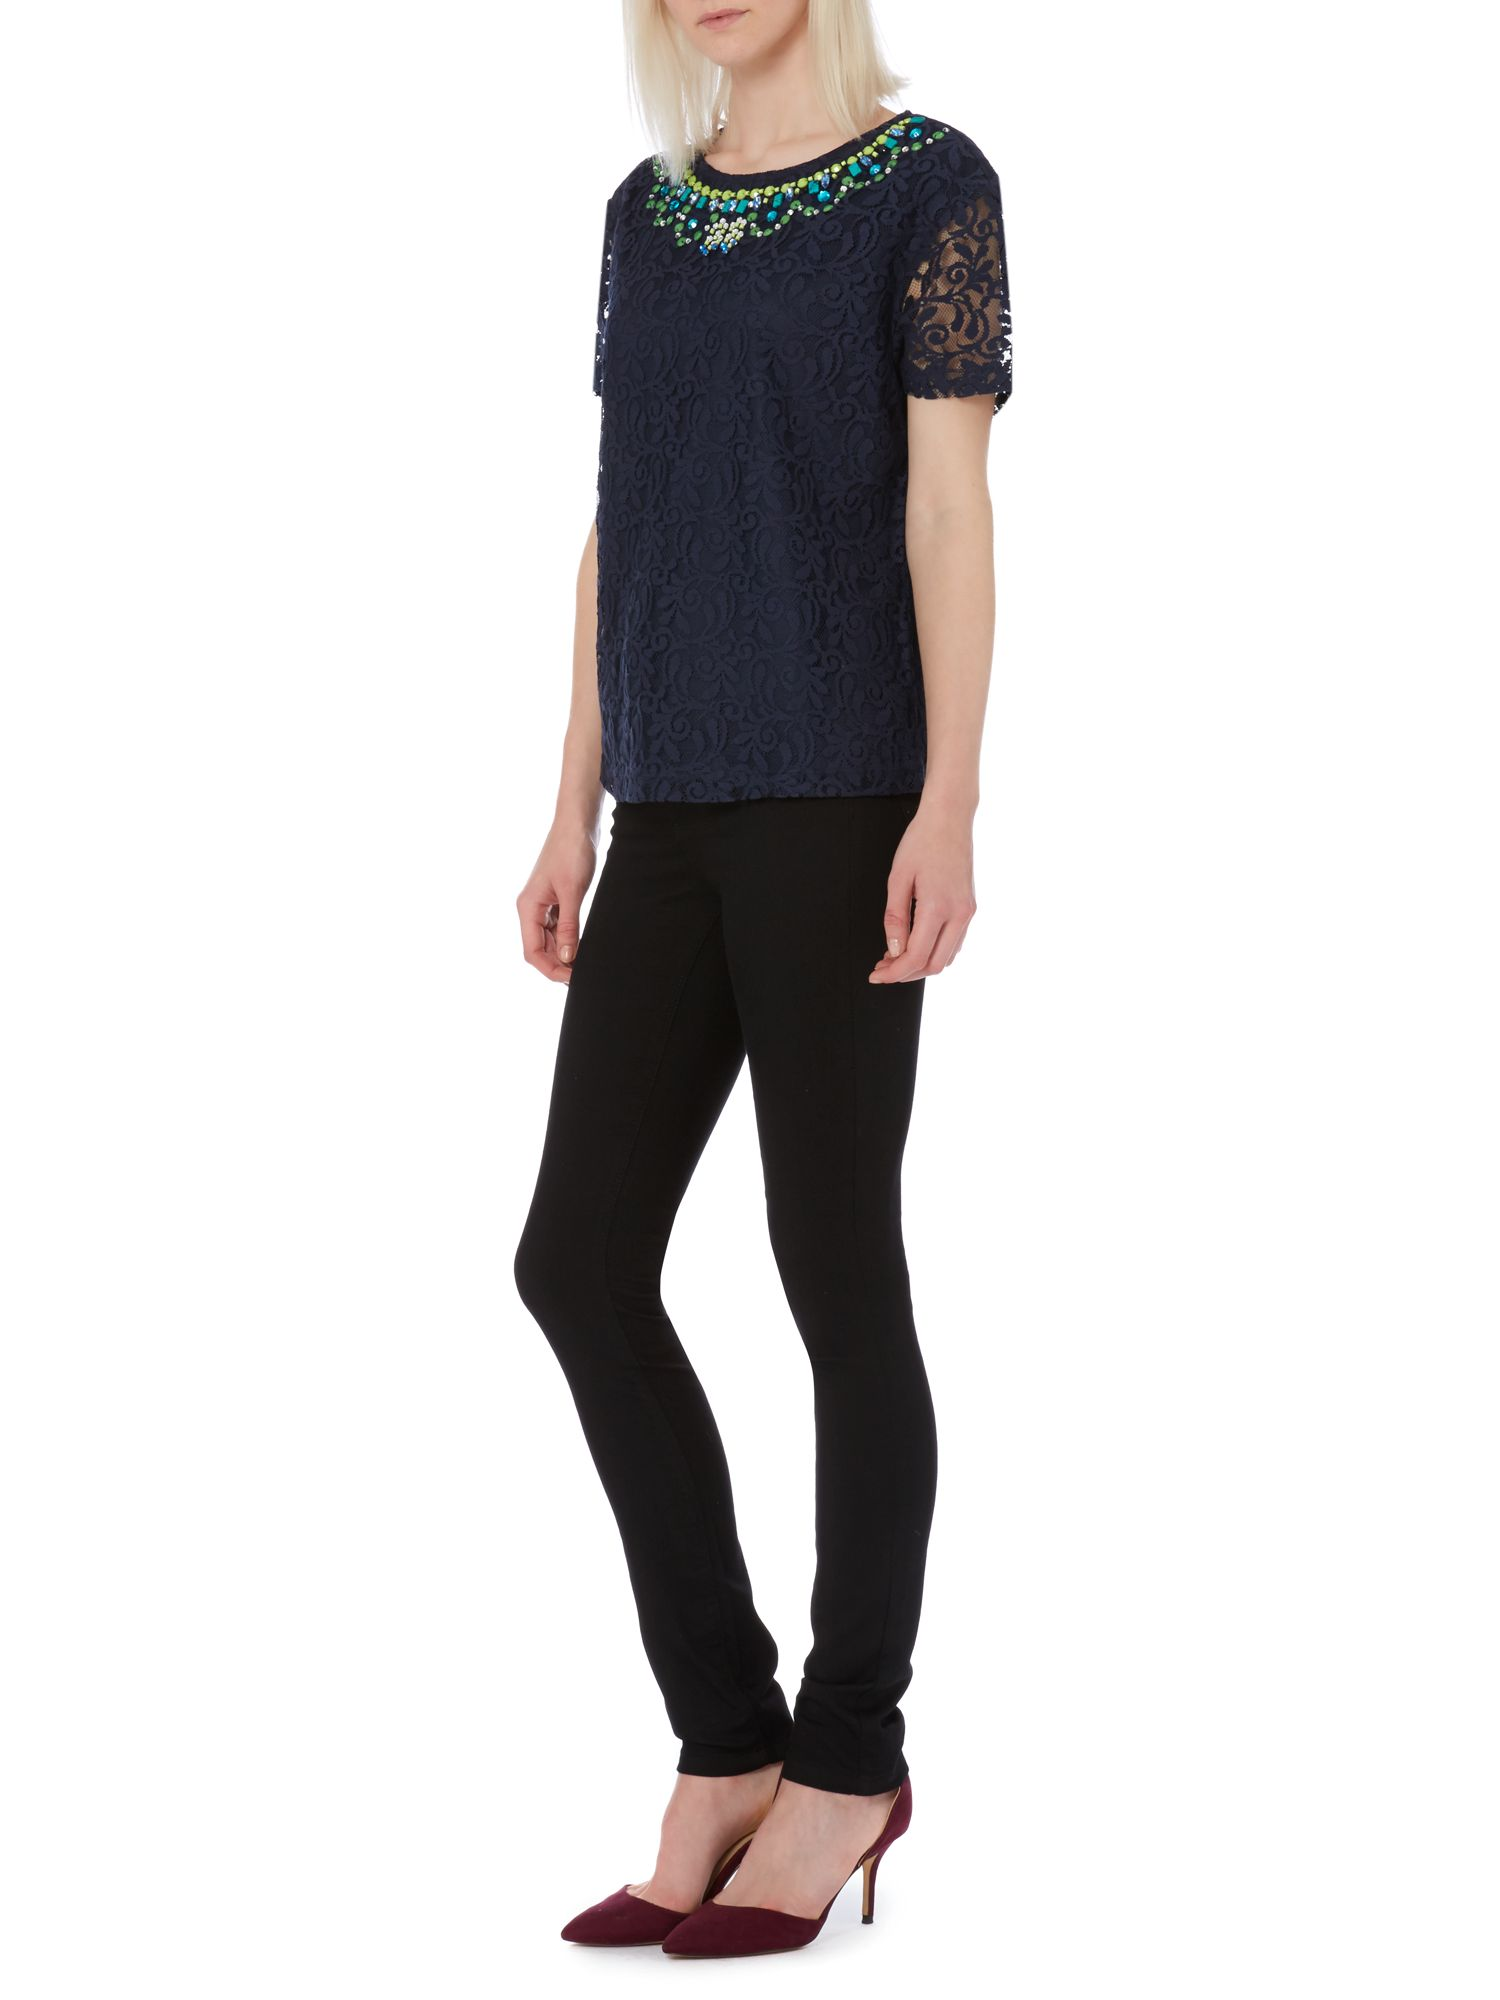 Embellished neck lace tee